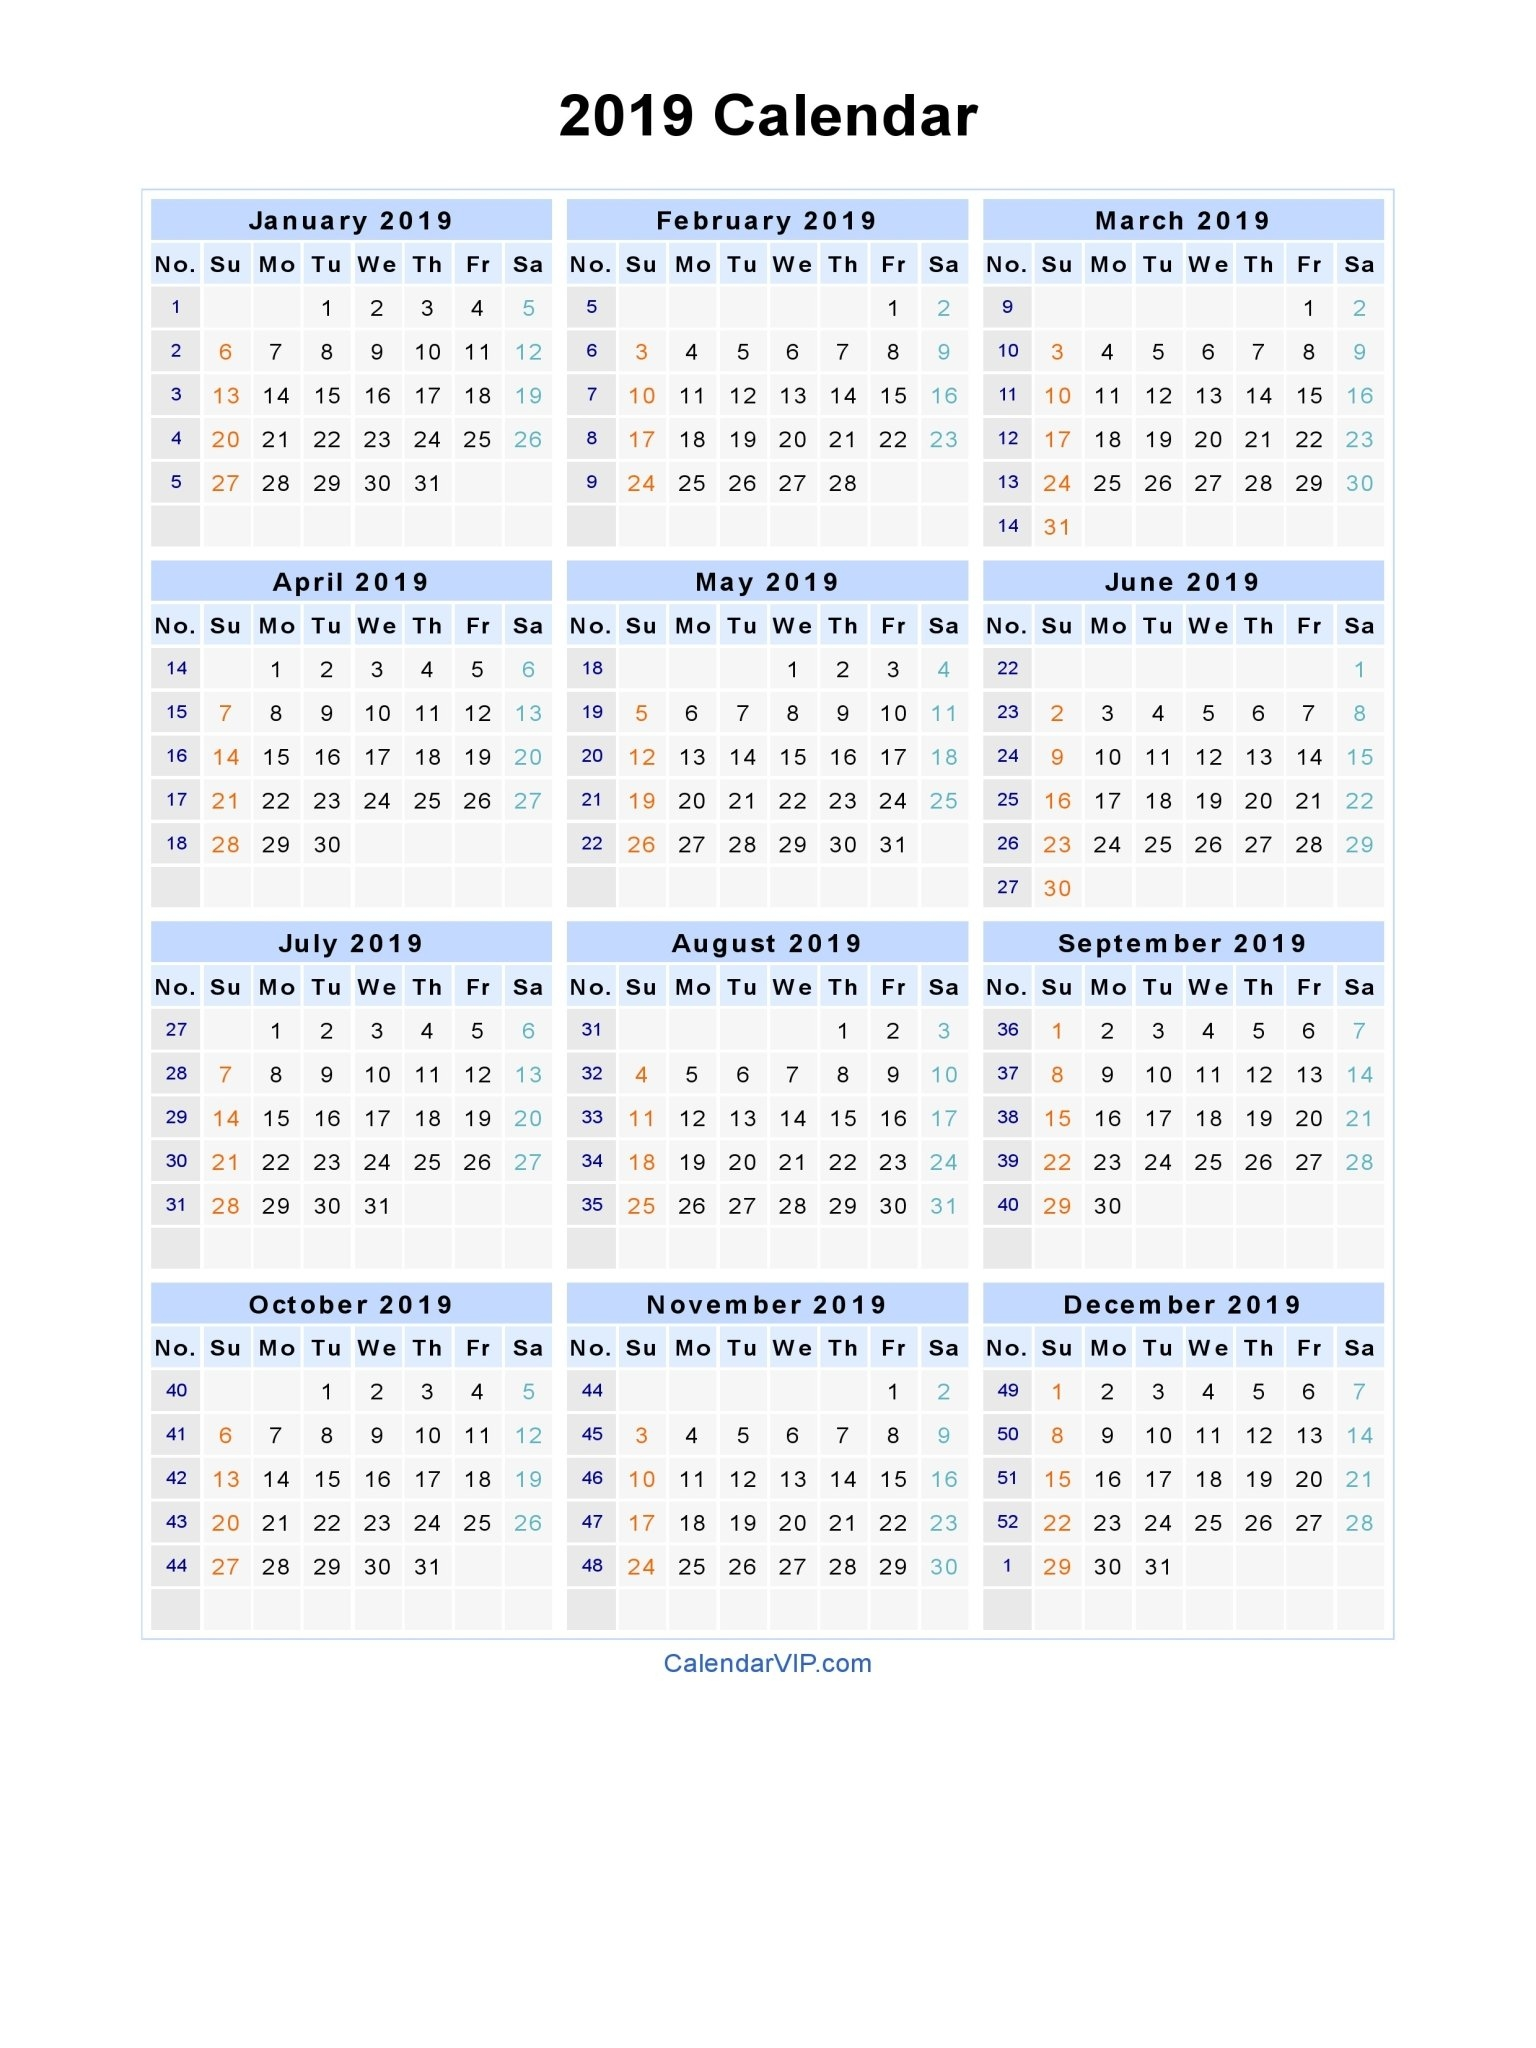 2019 Calendar - Blank Printable Calendar Template In Pdf Word Excel Calendar 2019 Excel By Week